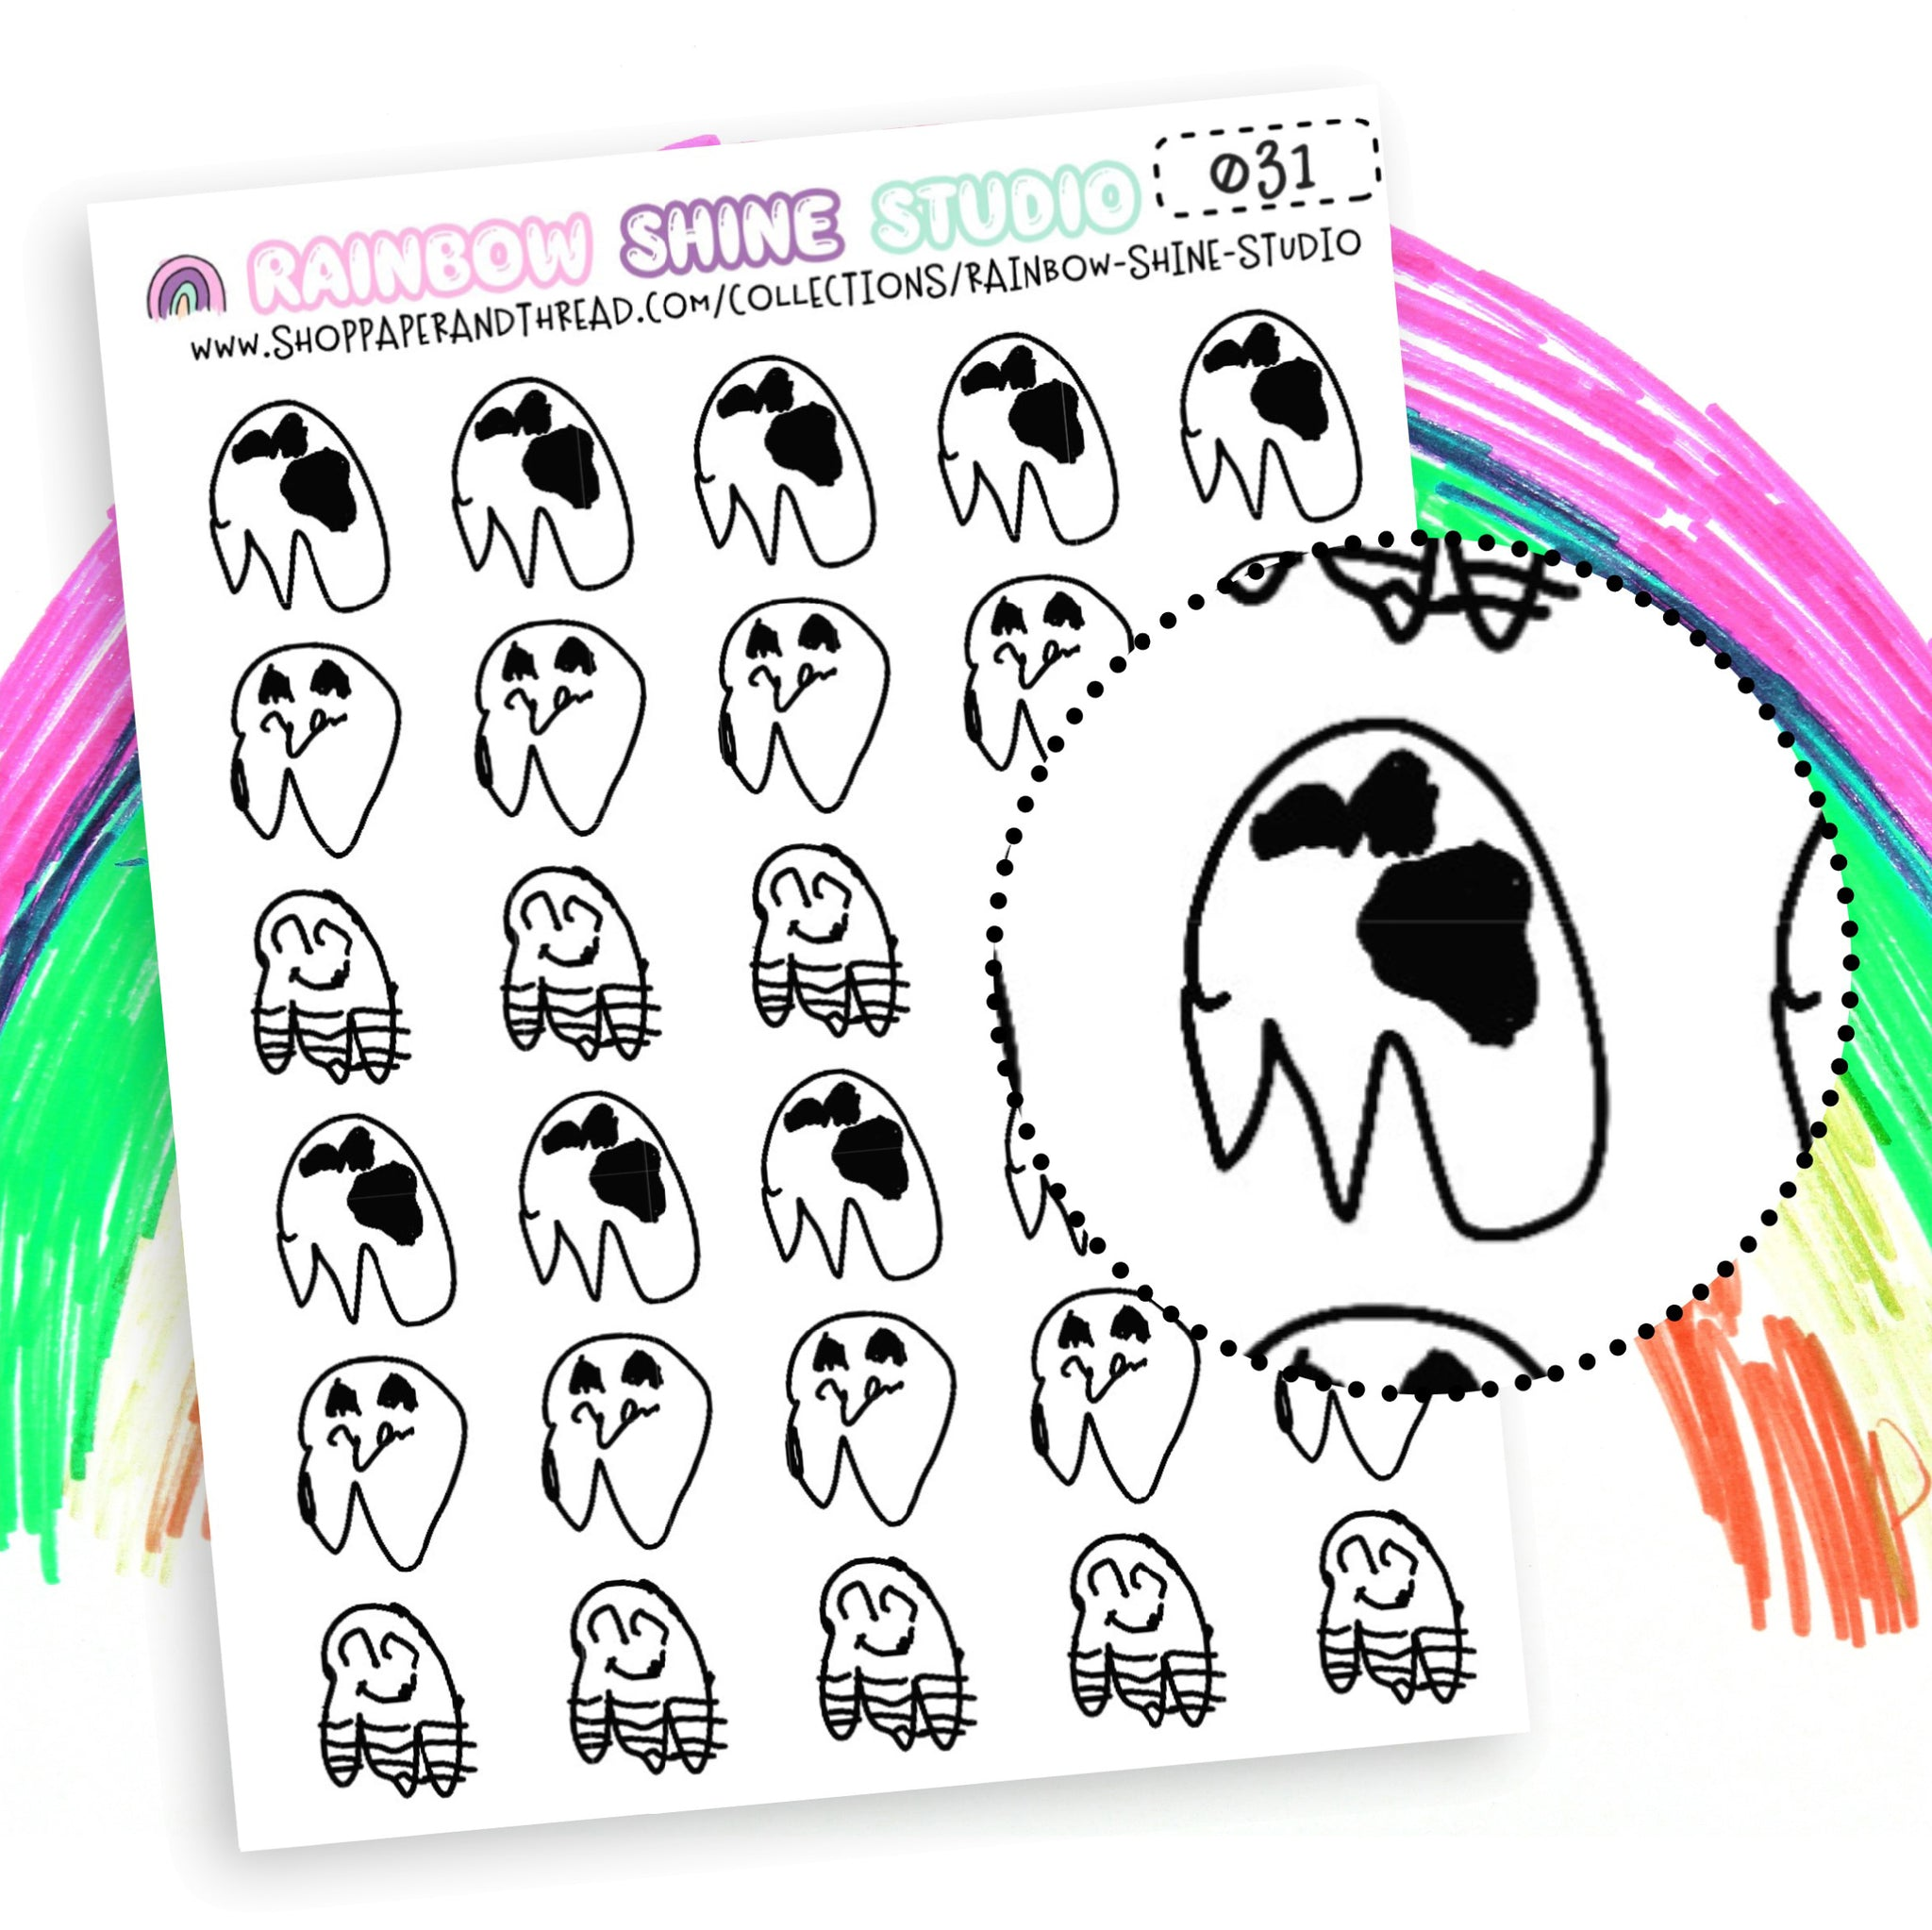 Ghost Planner Stickers - Spooky Cute Planner Stickers - Nuetral Planner Stickers - Rainbow Shine Studio - 031